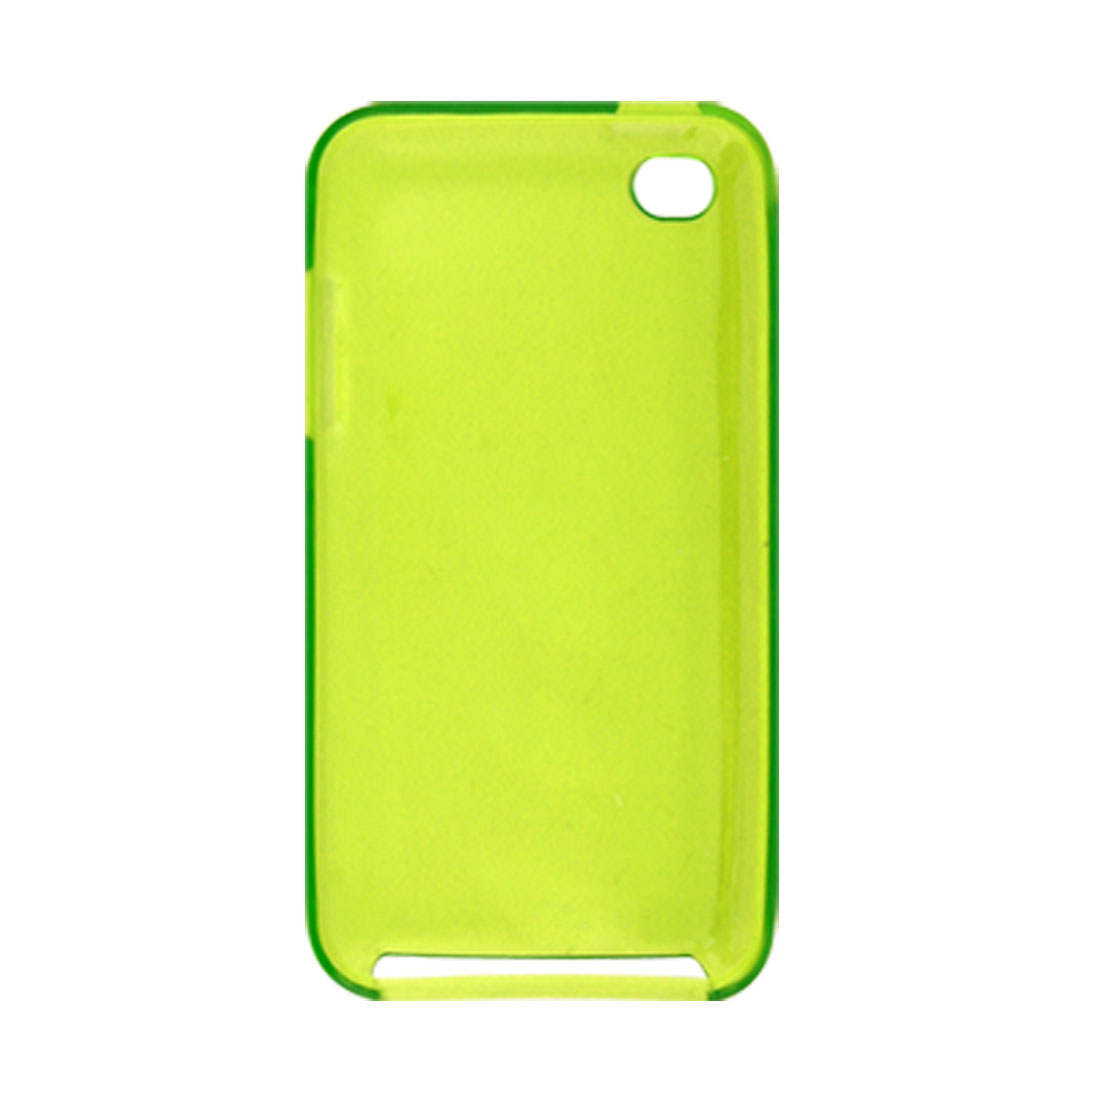 Pale Green Plastic Soft Back Cover for iPod Touch 4G